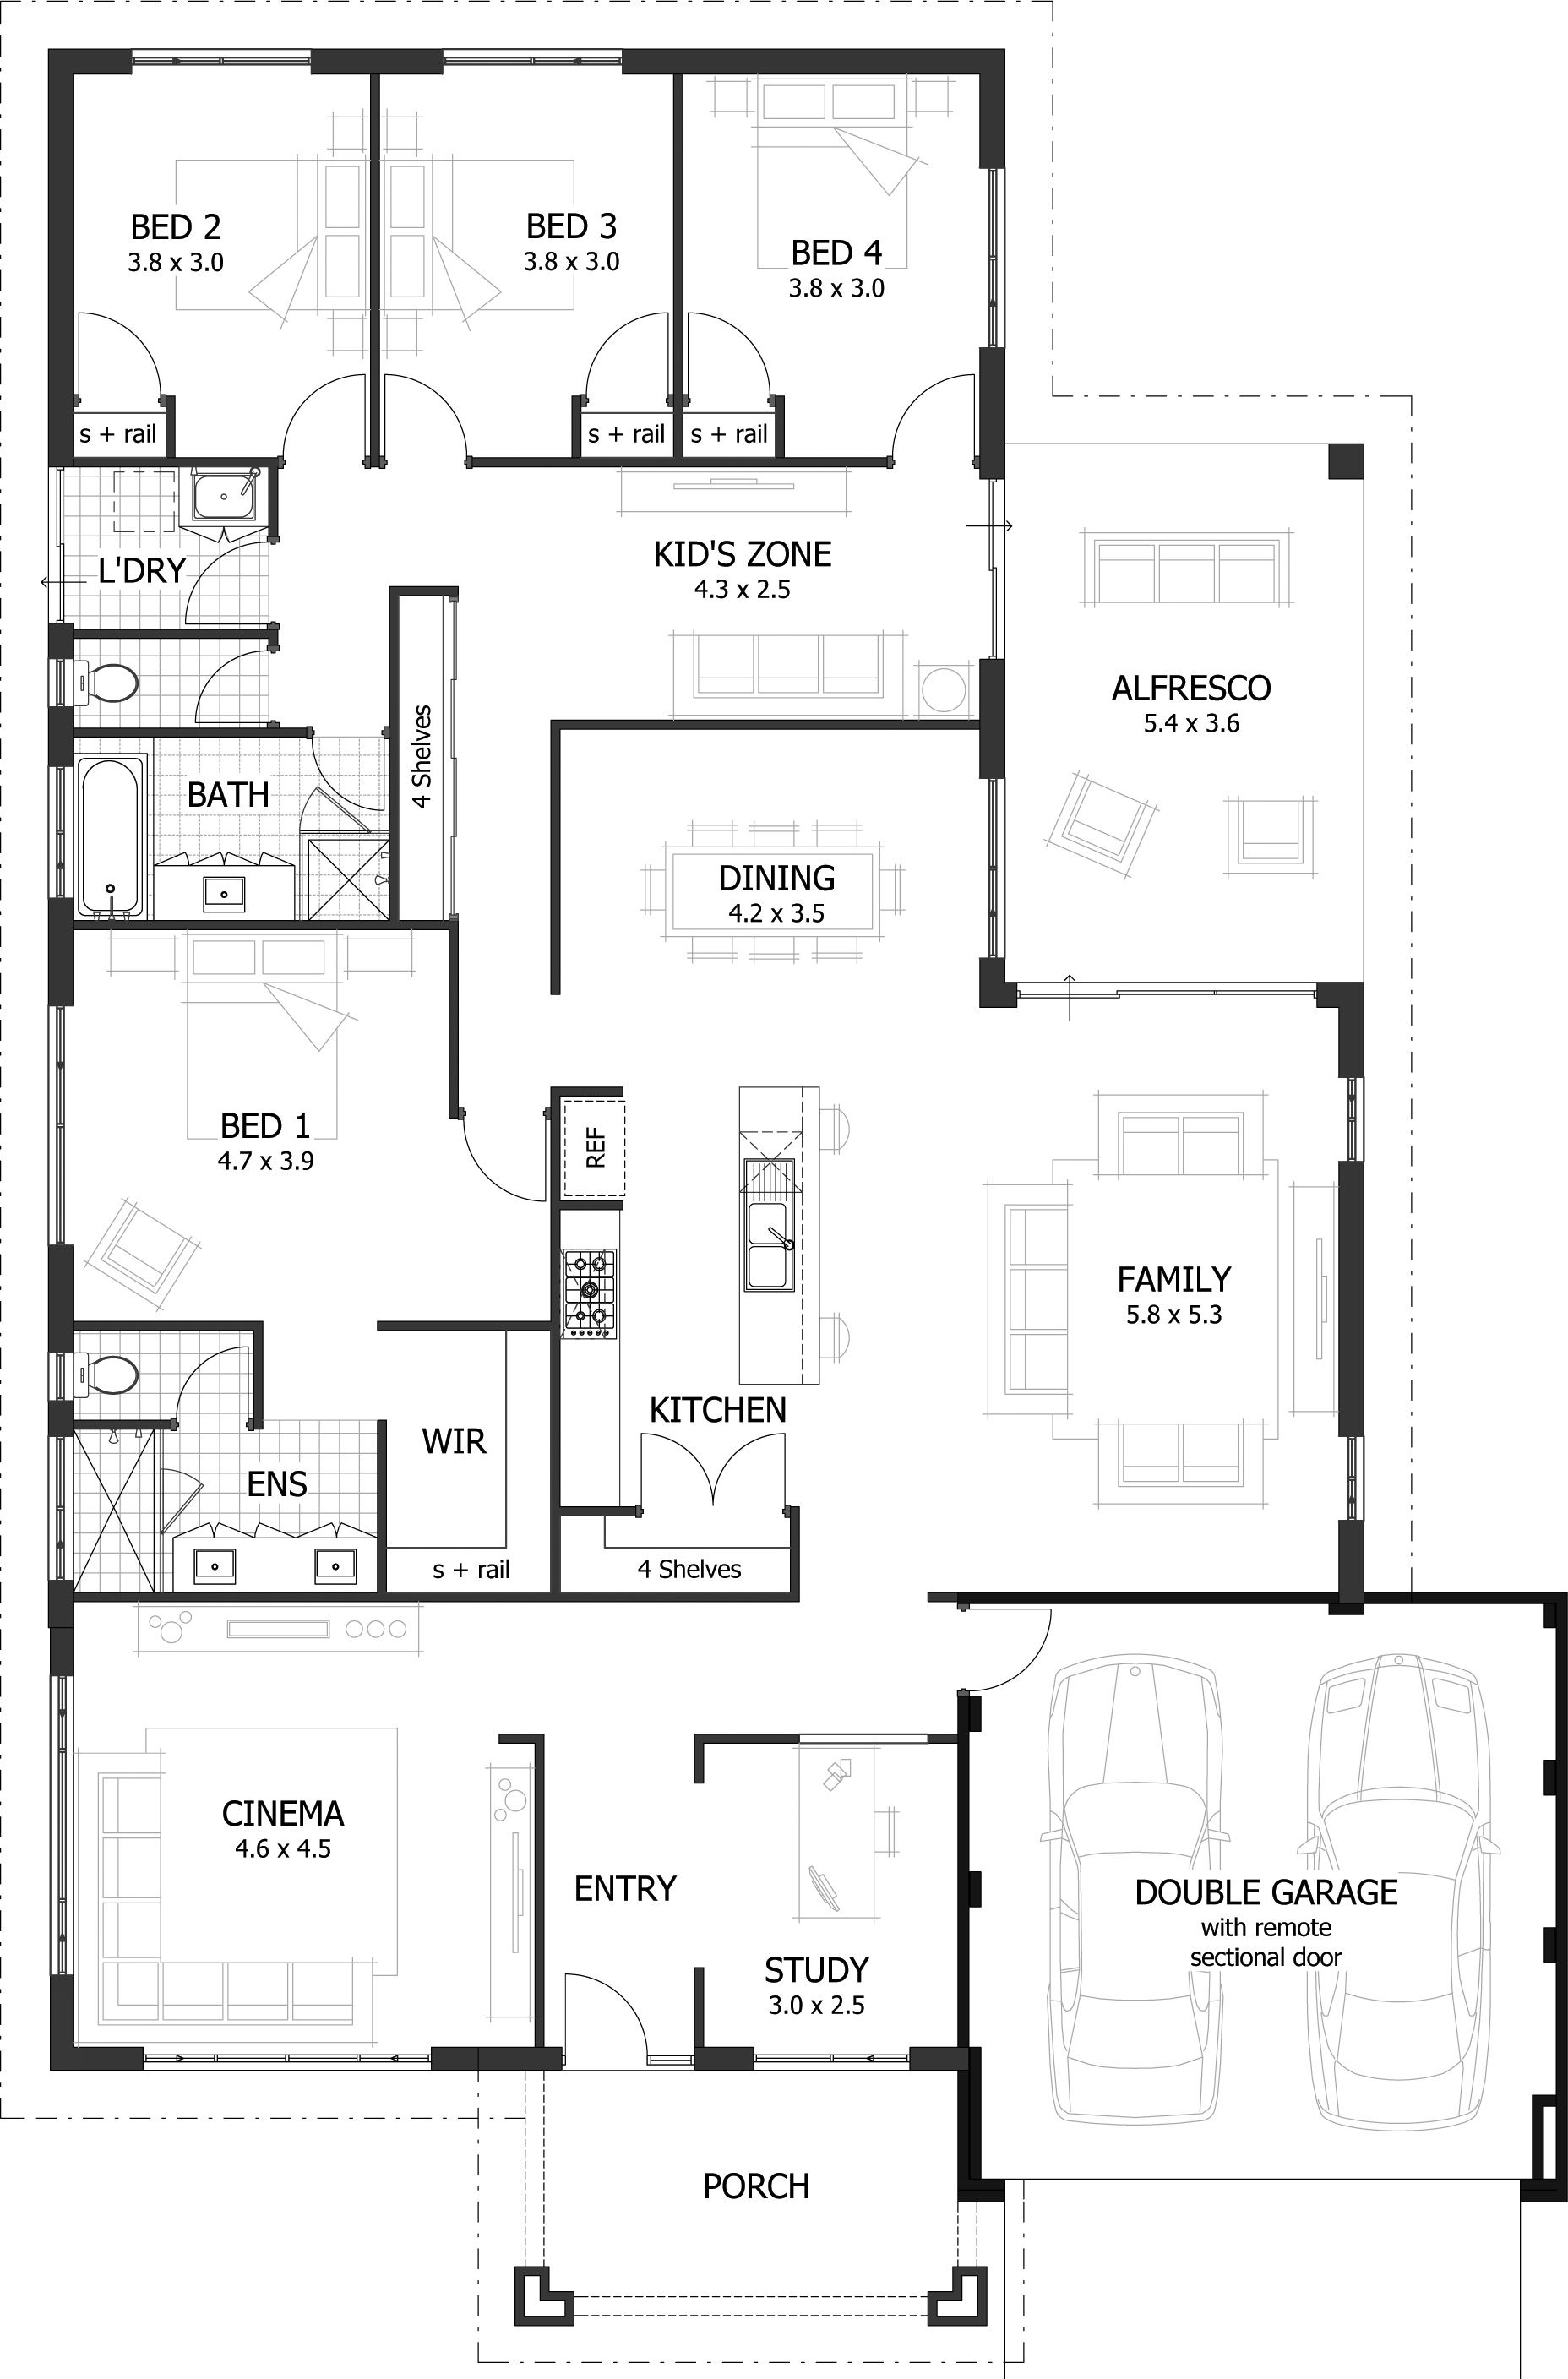 Exceptionnel 4 Bedroom House Plans U0026 Home Designs | Celebration Homes